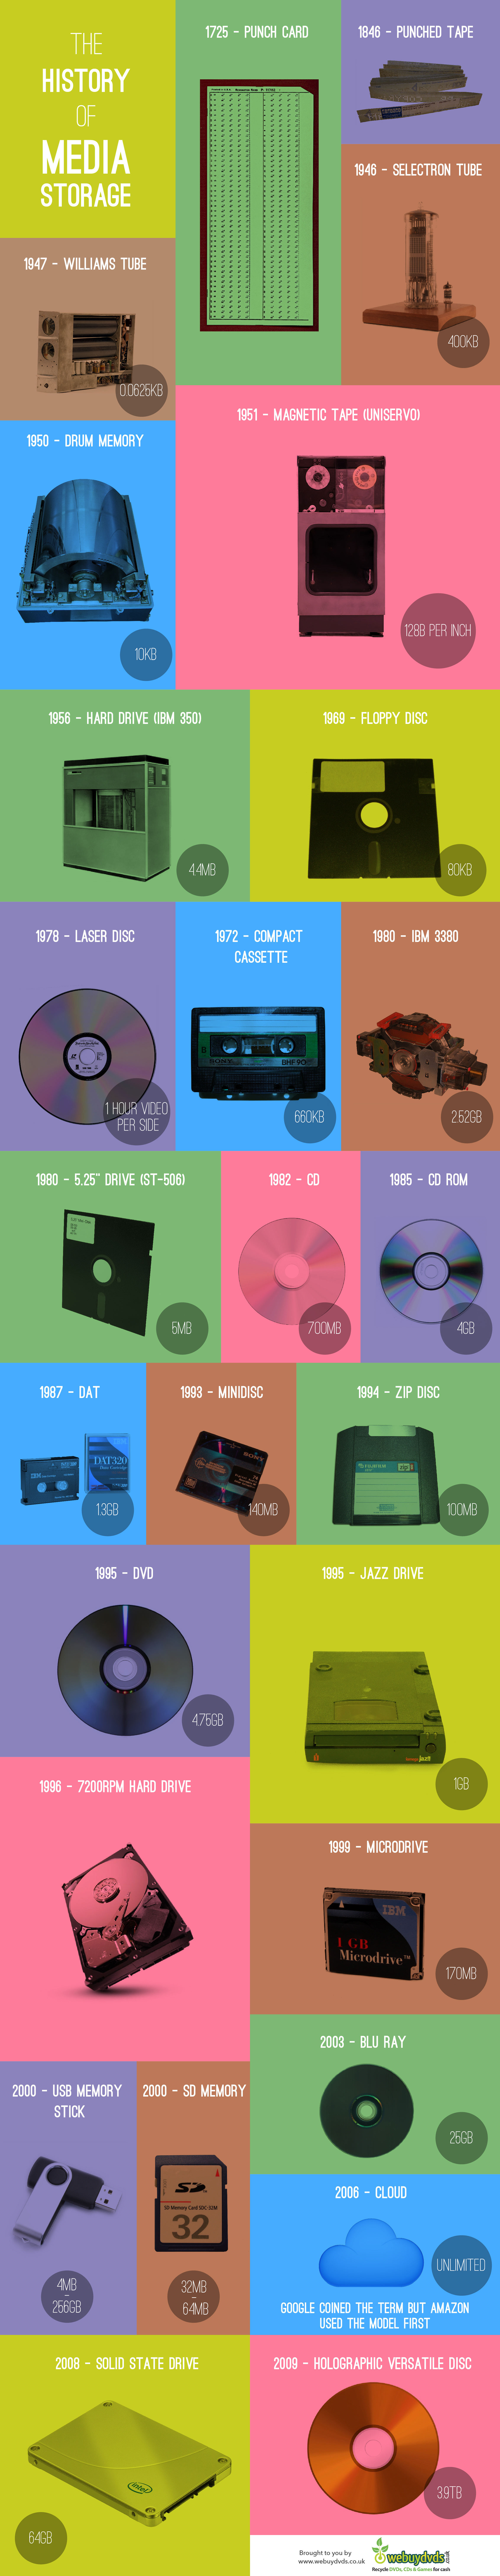 Infographic: The history of media storage